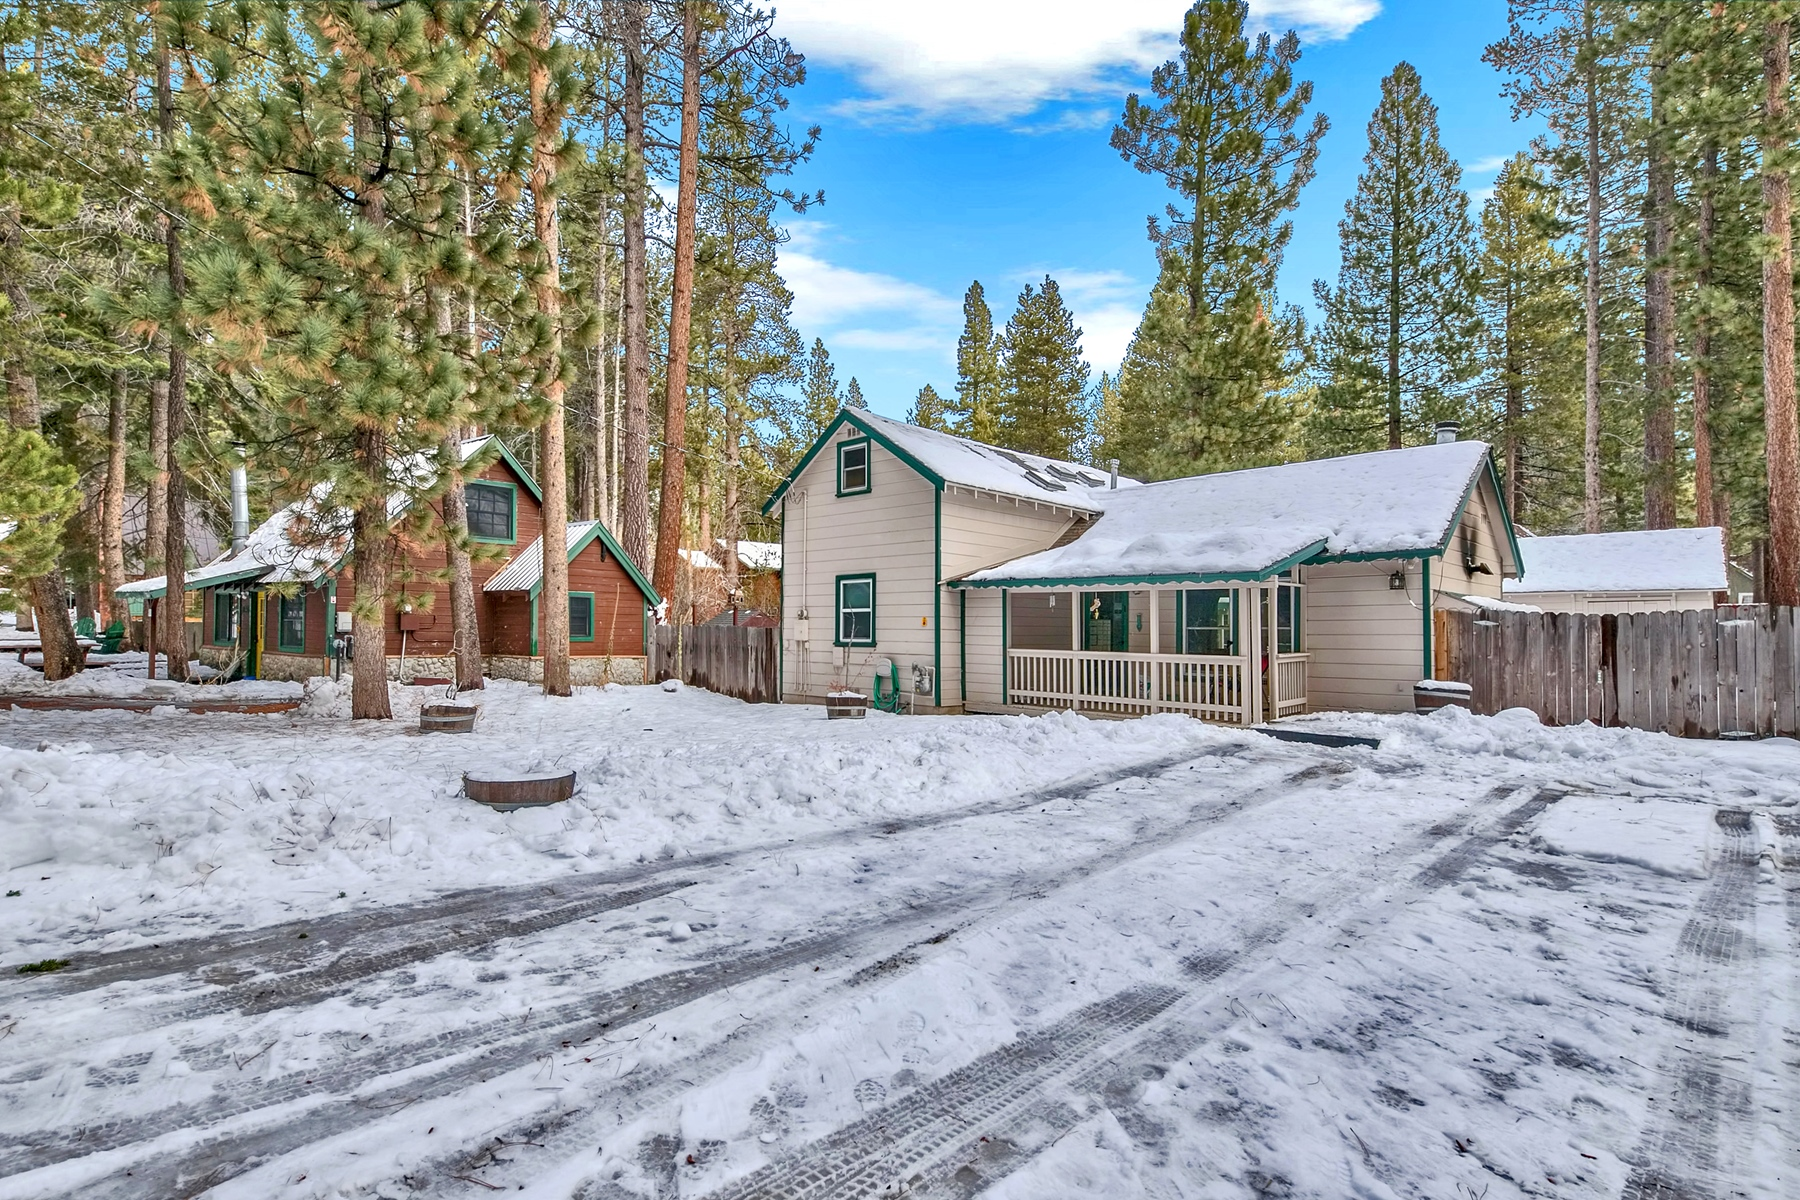 single family homes for Active at 1095 Long Valley Ave, South Lake Tahoe, CA 96150 1095 Long Valley Ave South Lake Tahoe, California 96150 United States